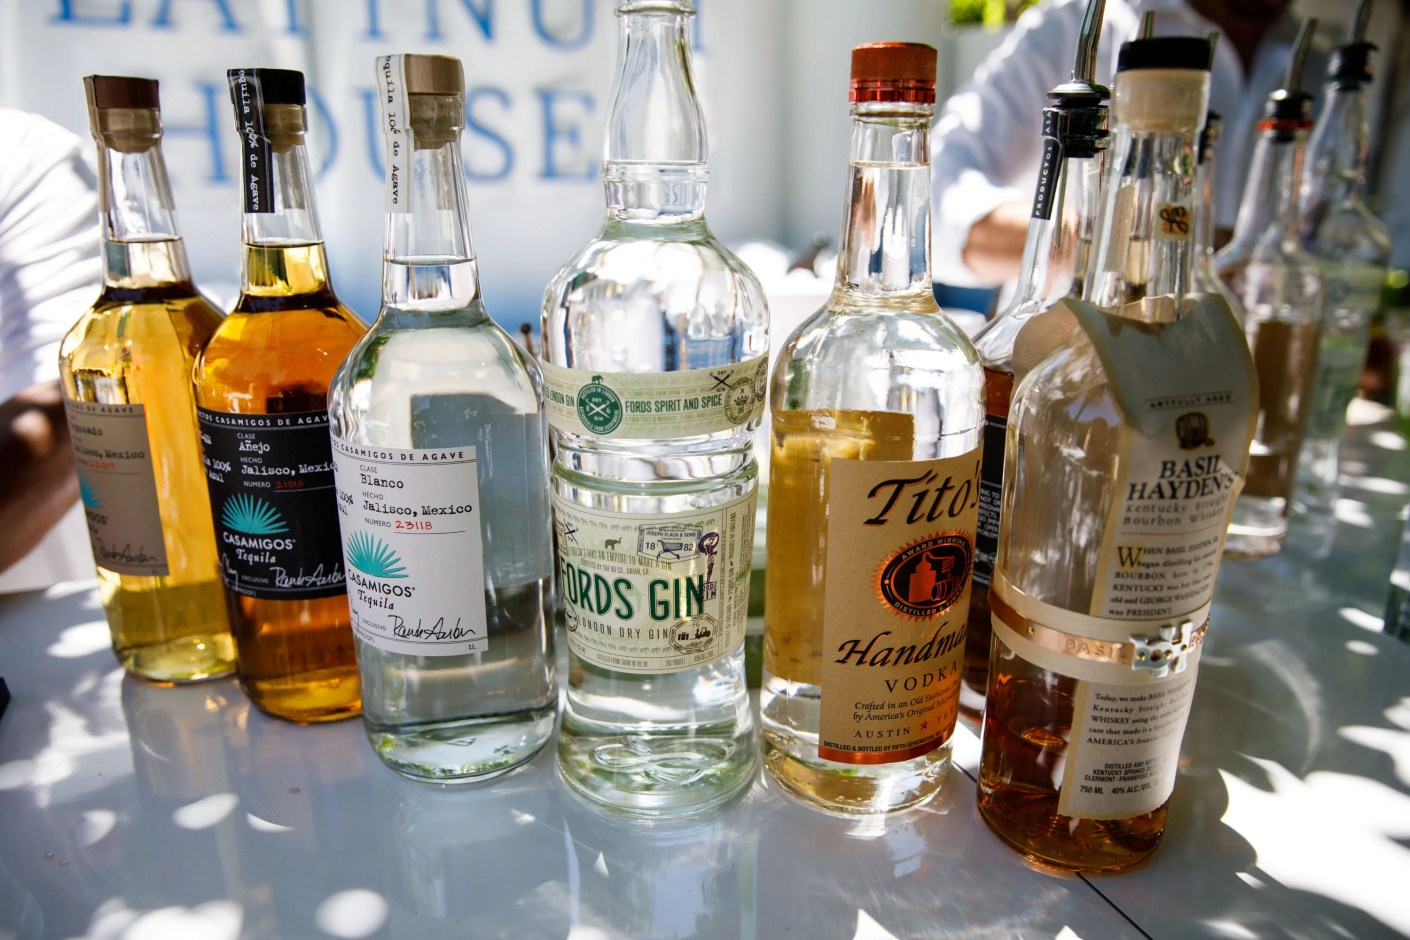 Some of the spirits selection. (Photo by Patrick T. Fallon/The Points Guy)